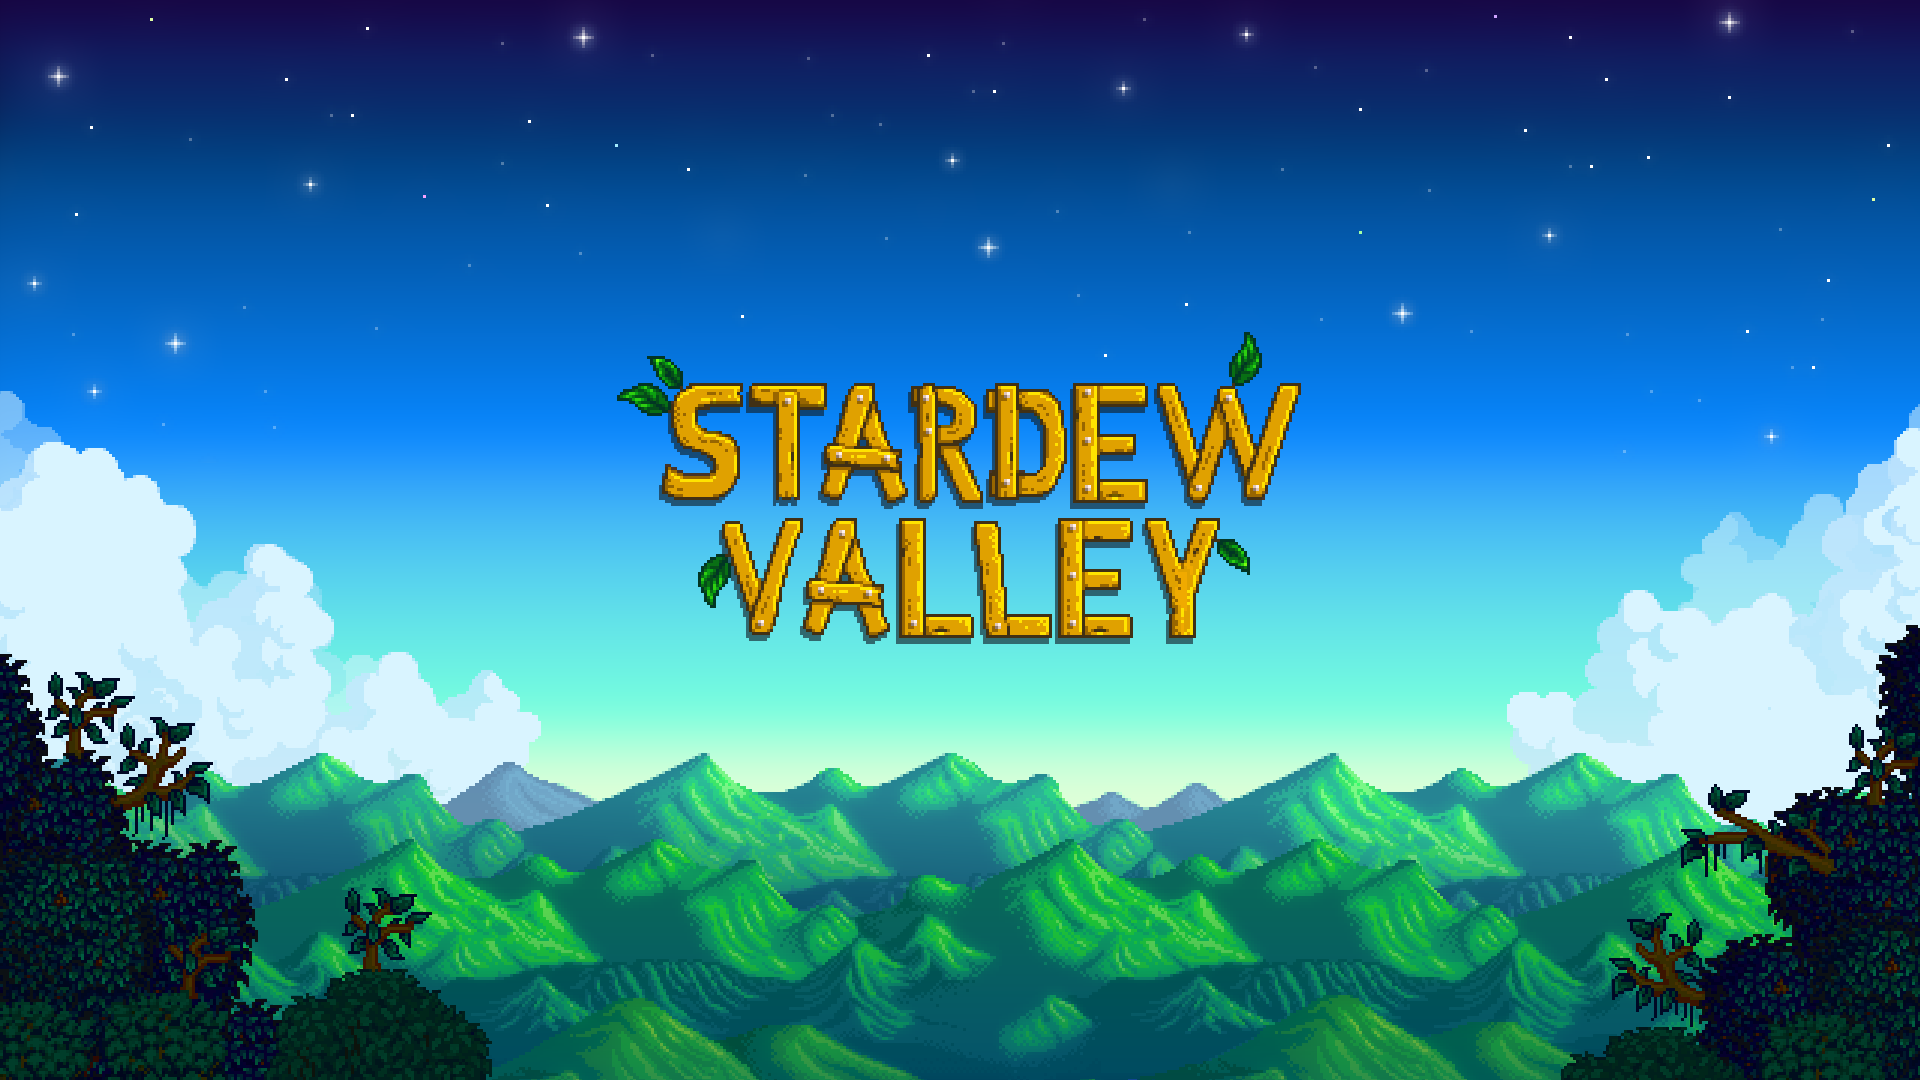 There are still undiscovered Stardew